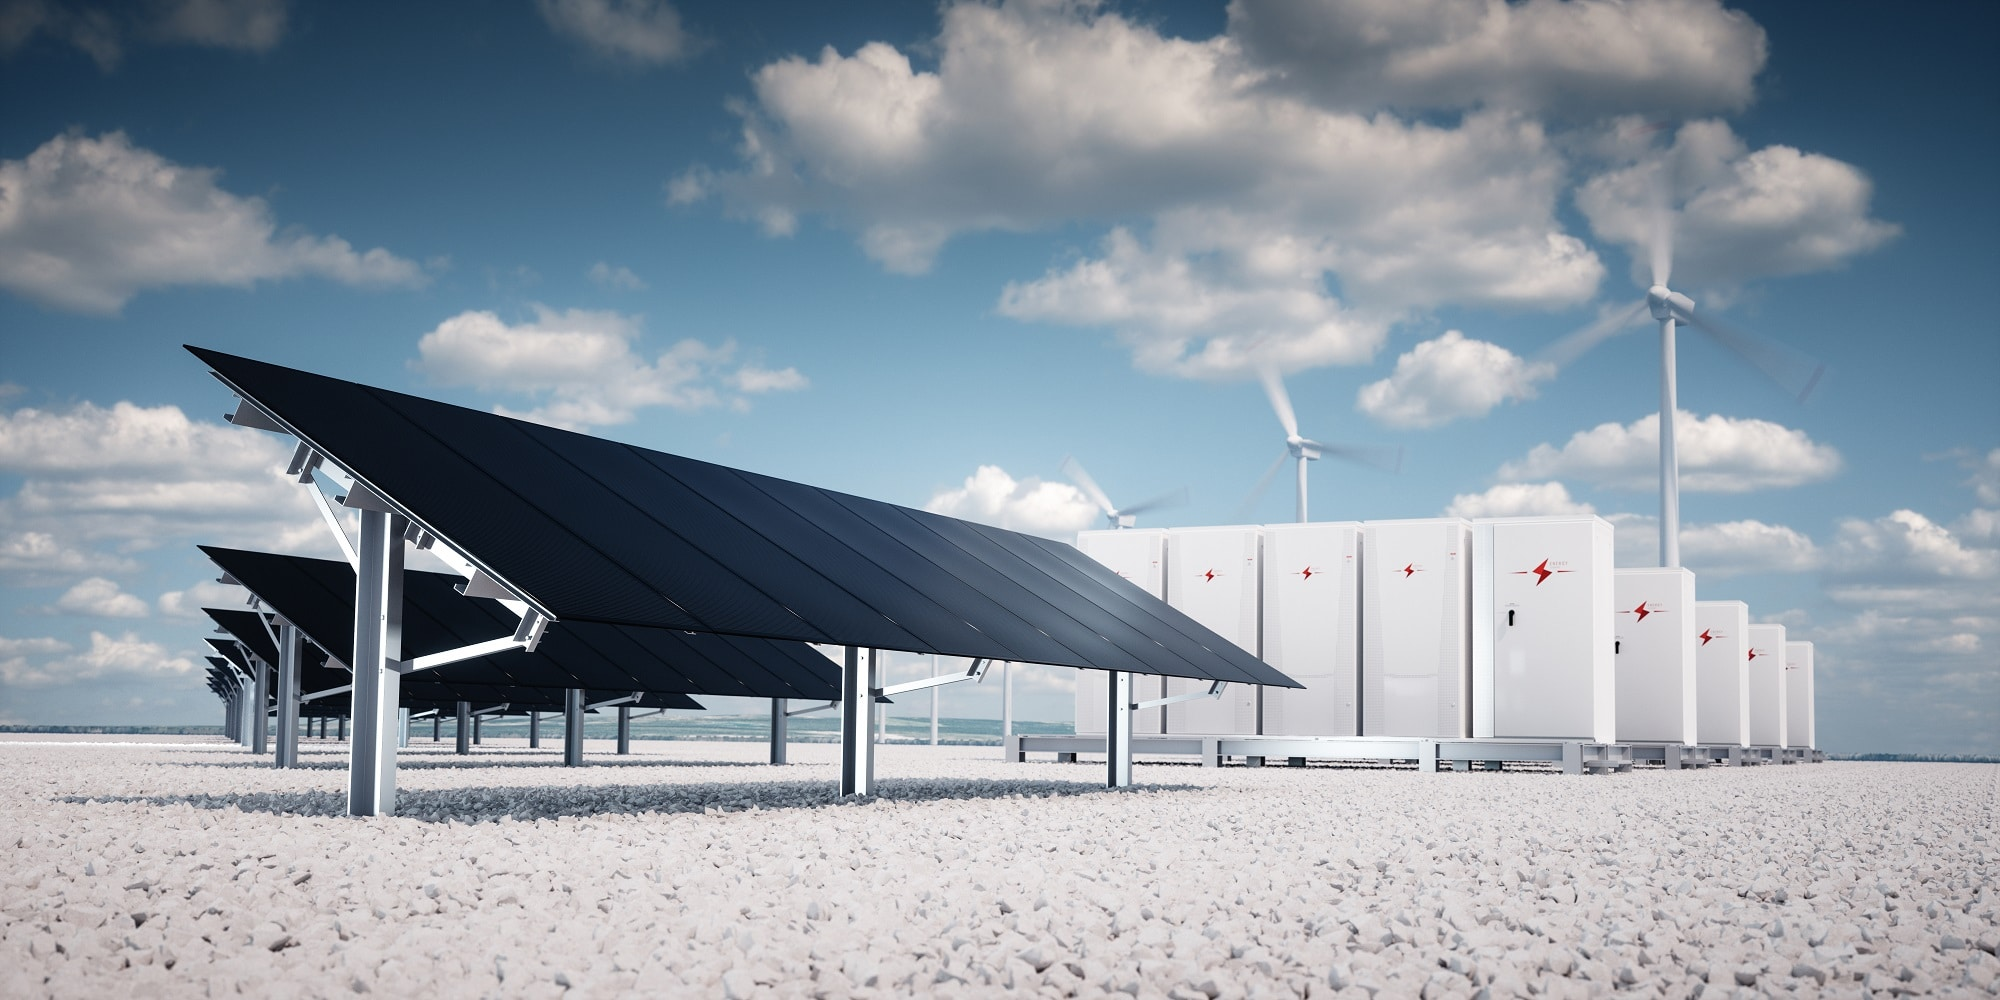 Solar+storage to add most new battery storage capacity in the U.S. over next three years